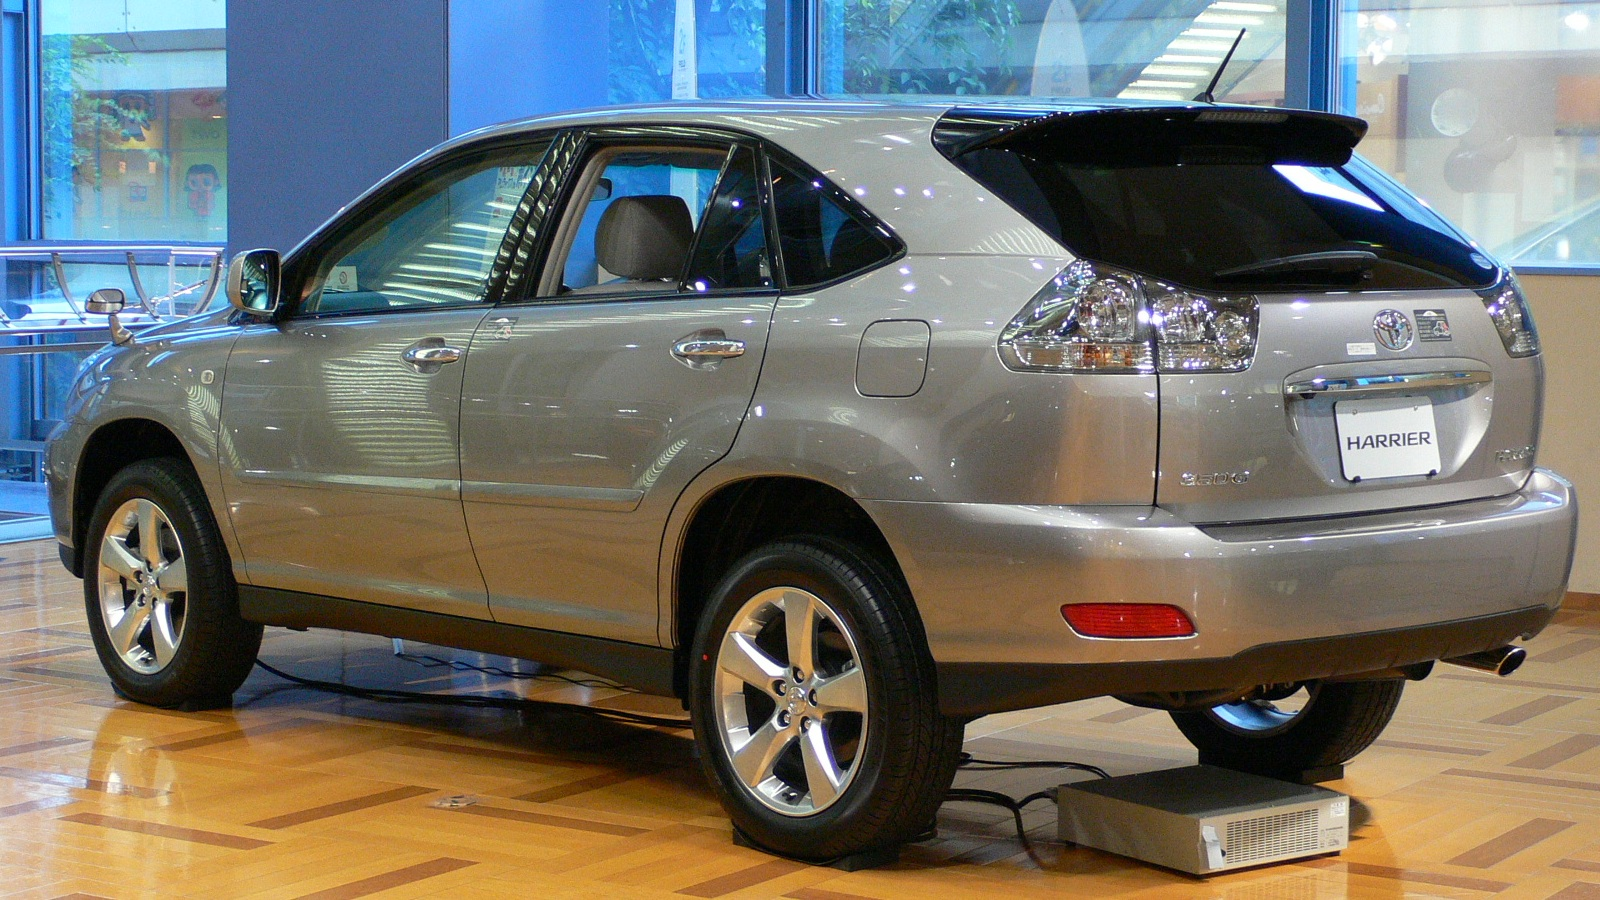 2001 Toyota Harrier Pictures Information And Specs